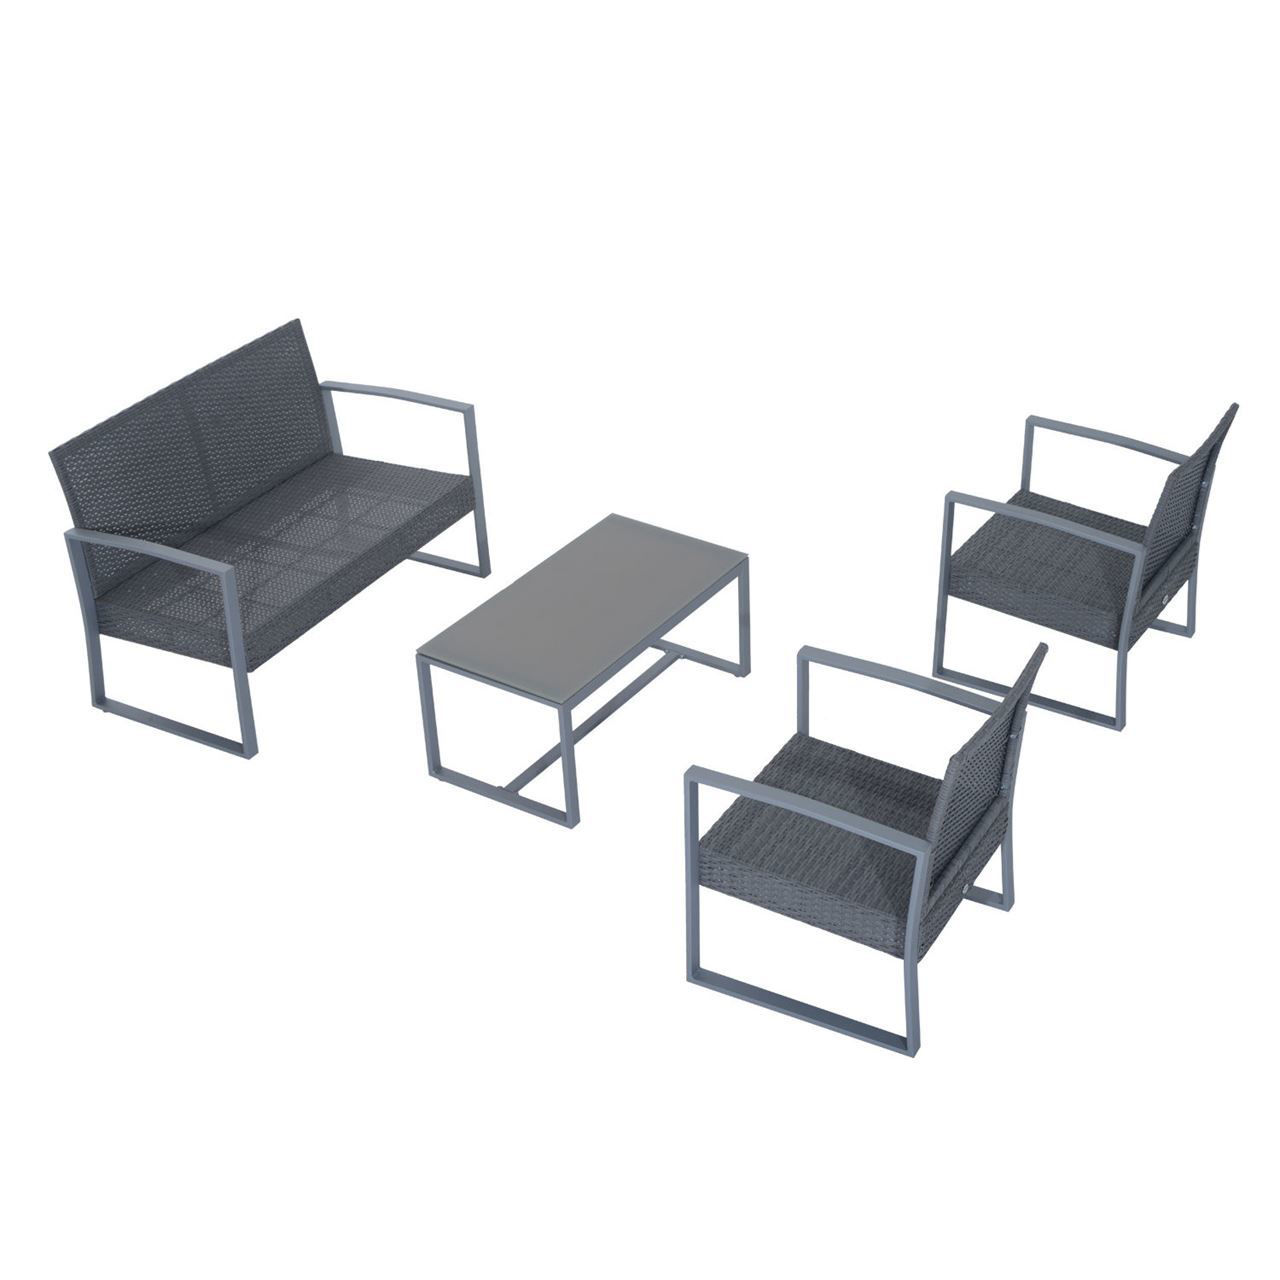 Picture of Outdoor 4-Piece Cushioned Rattan Wicker Chair and Loveseat Furniture Set